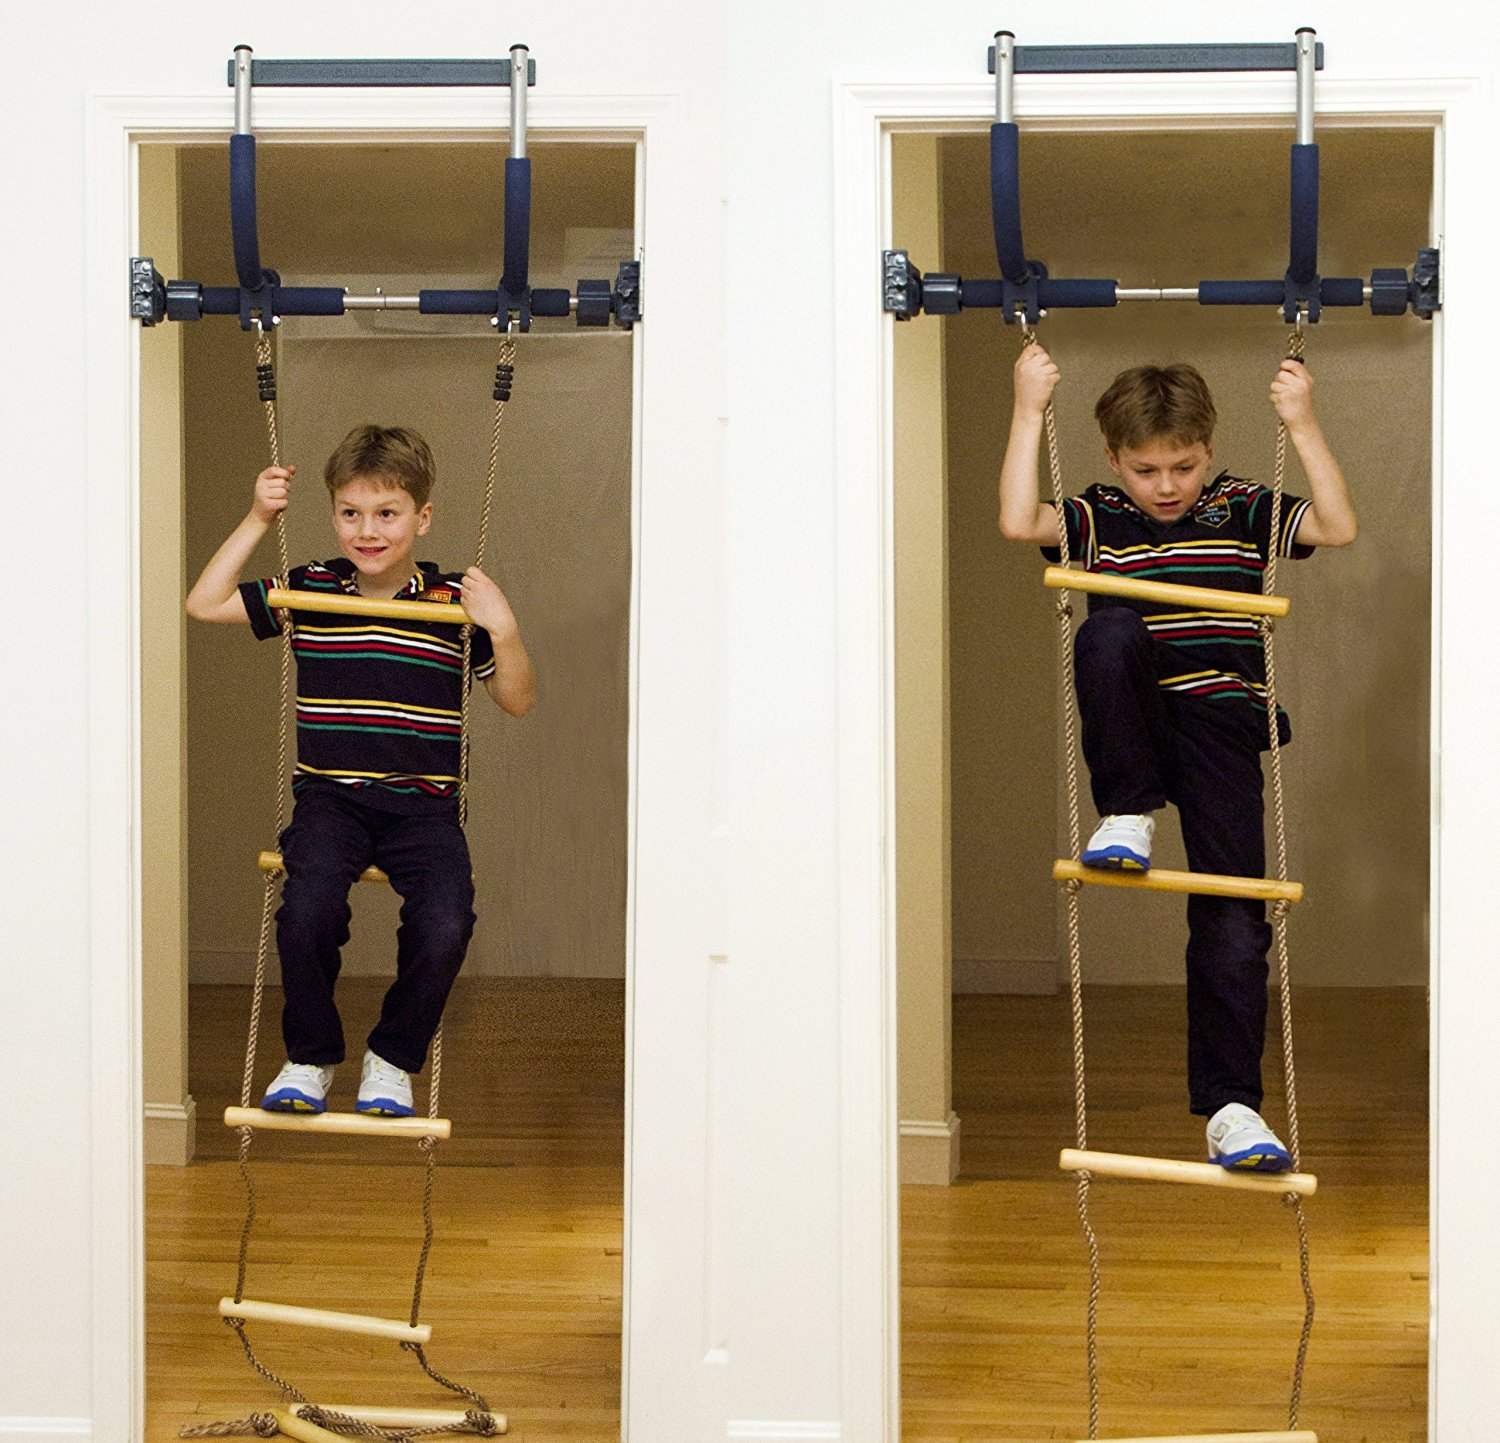 Gym1 Indoor Playground with Indoor Swing, Plastic Rings, and Climbing Ladder by Gym1 (Image #4)